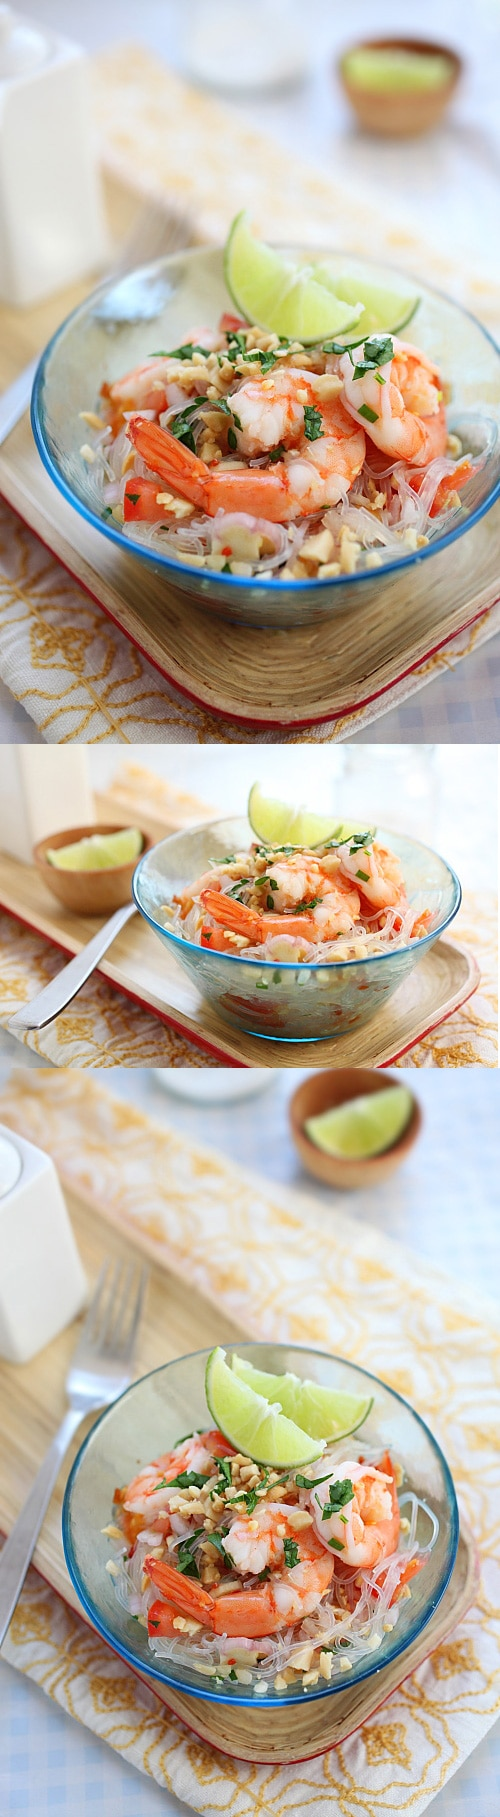 Thai Noodle Salad Yum Woon Sen - easy recipe of healthy Thai noodle salad with shrimp in a delicious lime and sweet chili dressing | rasamalaysia.com